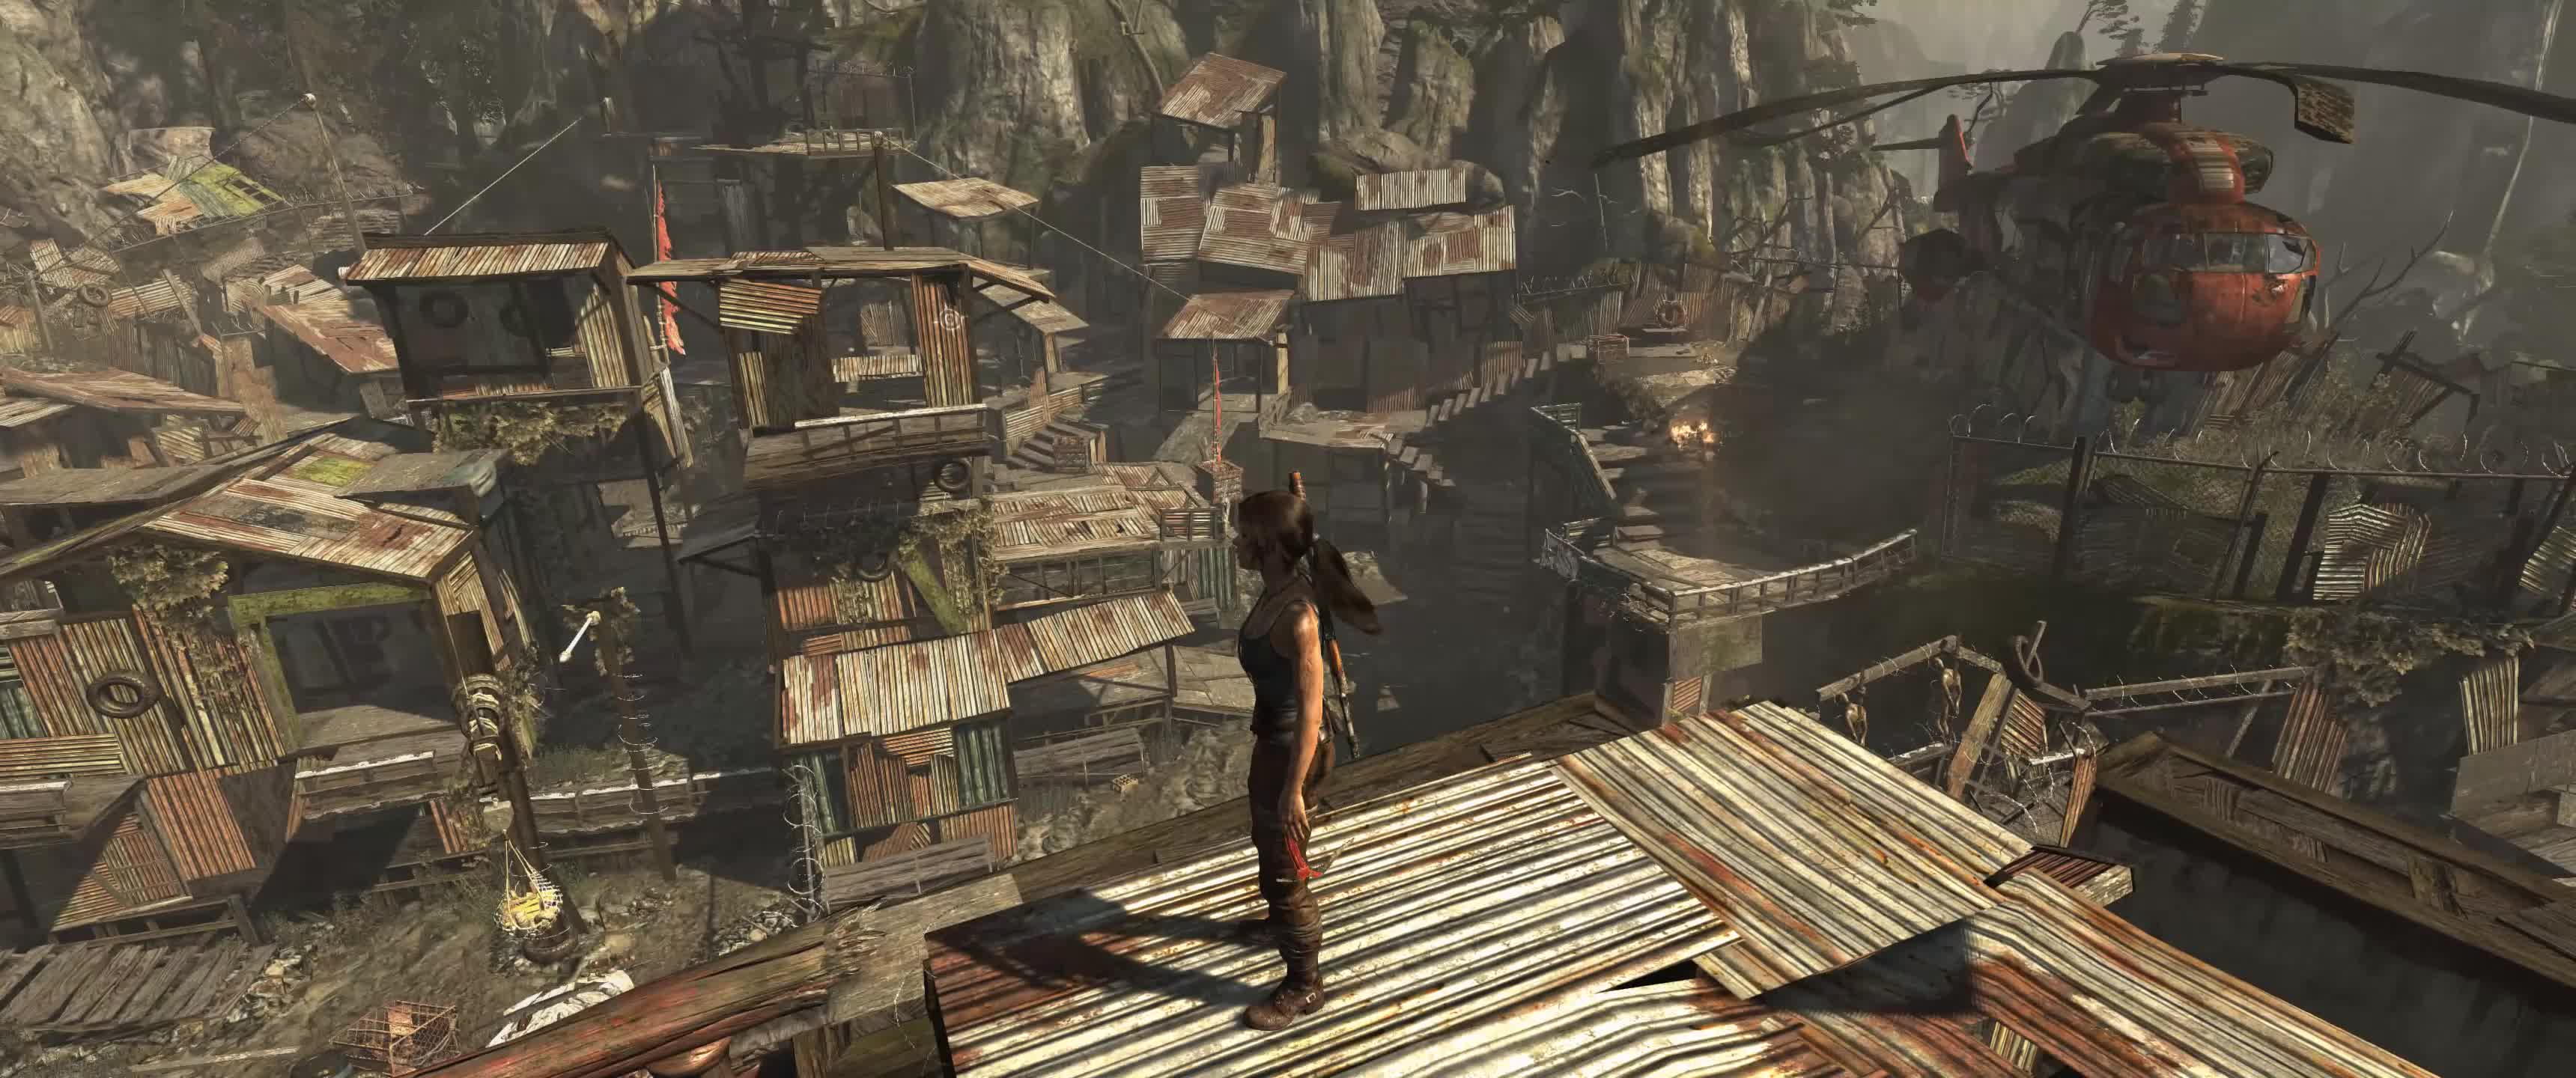 Tomb Raider 2013 Utra Wide Maxed Out Gif By Dread3ddie Gfycat